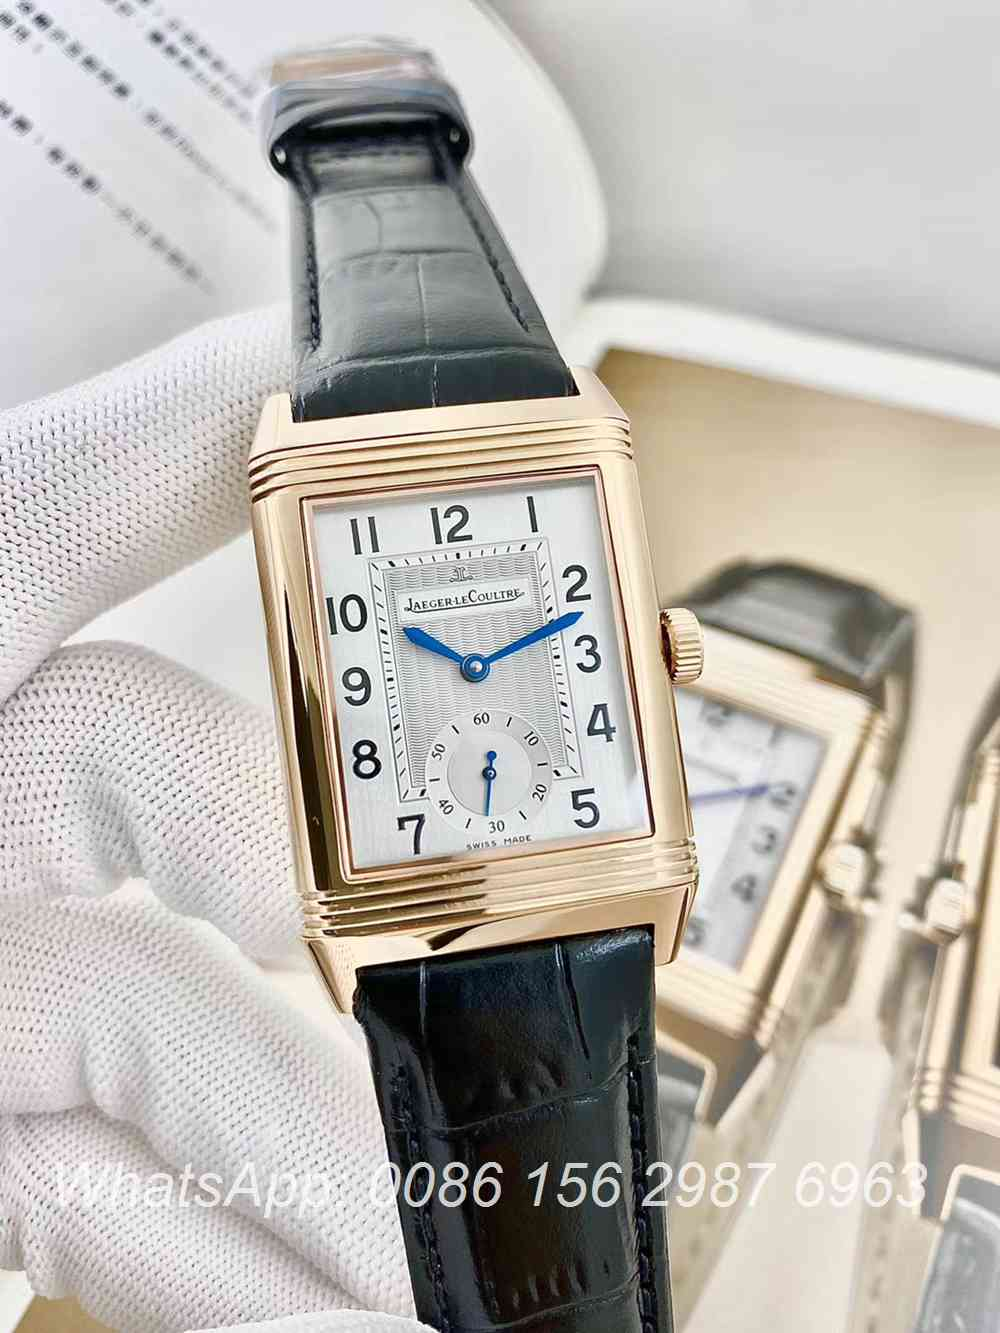 JL160XD319, JL reverso classic large duoface small second men's watch rose gold